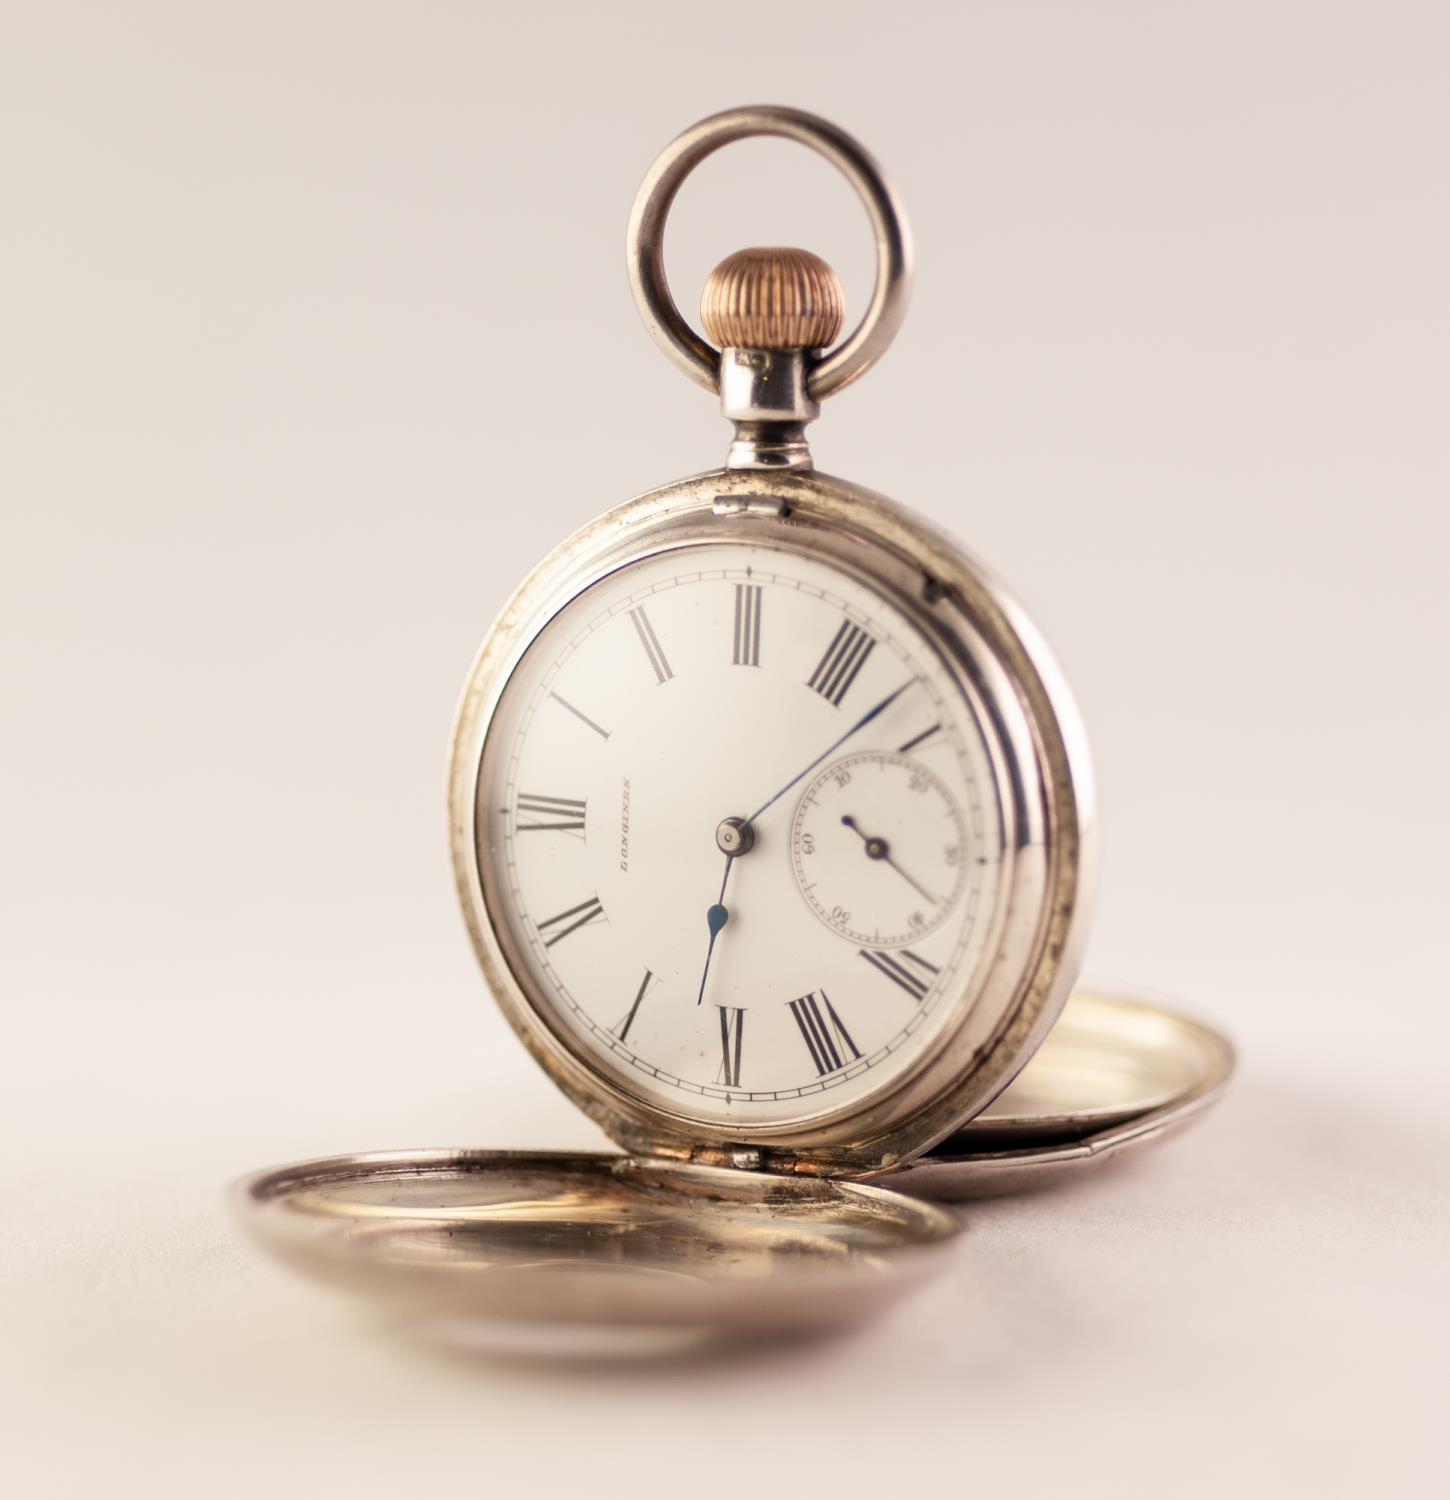 Lot 17 - A LATE VICTORIAN LONGINES SILVER HALF HUNTER POCKET WATCH White Roman numeral dial with subsidiary